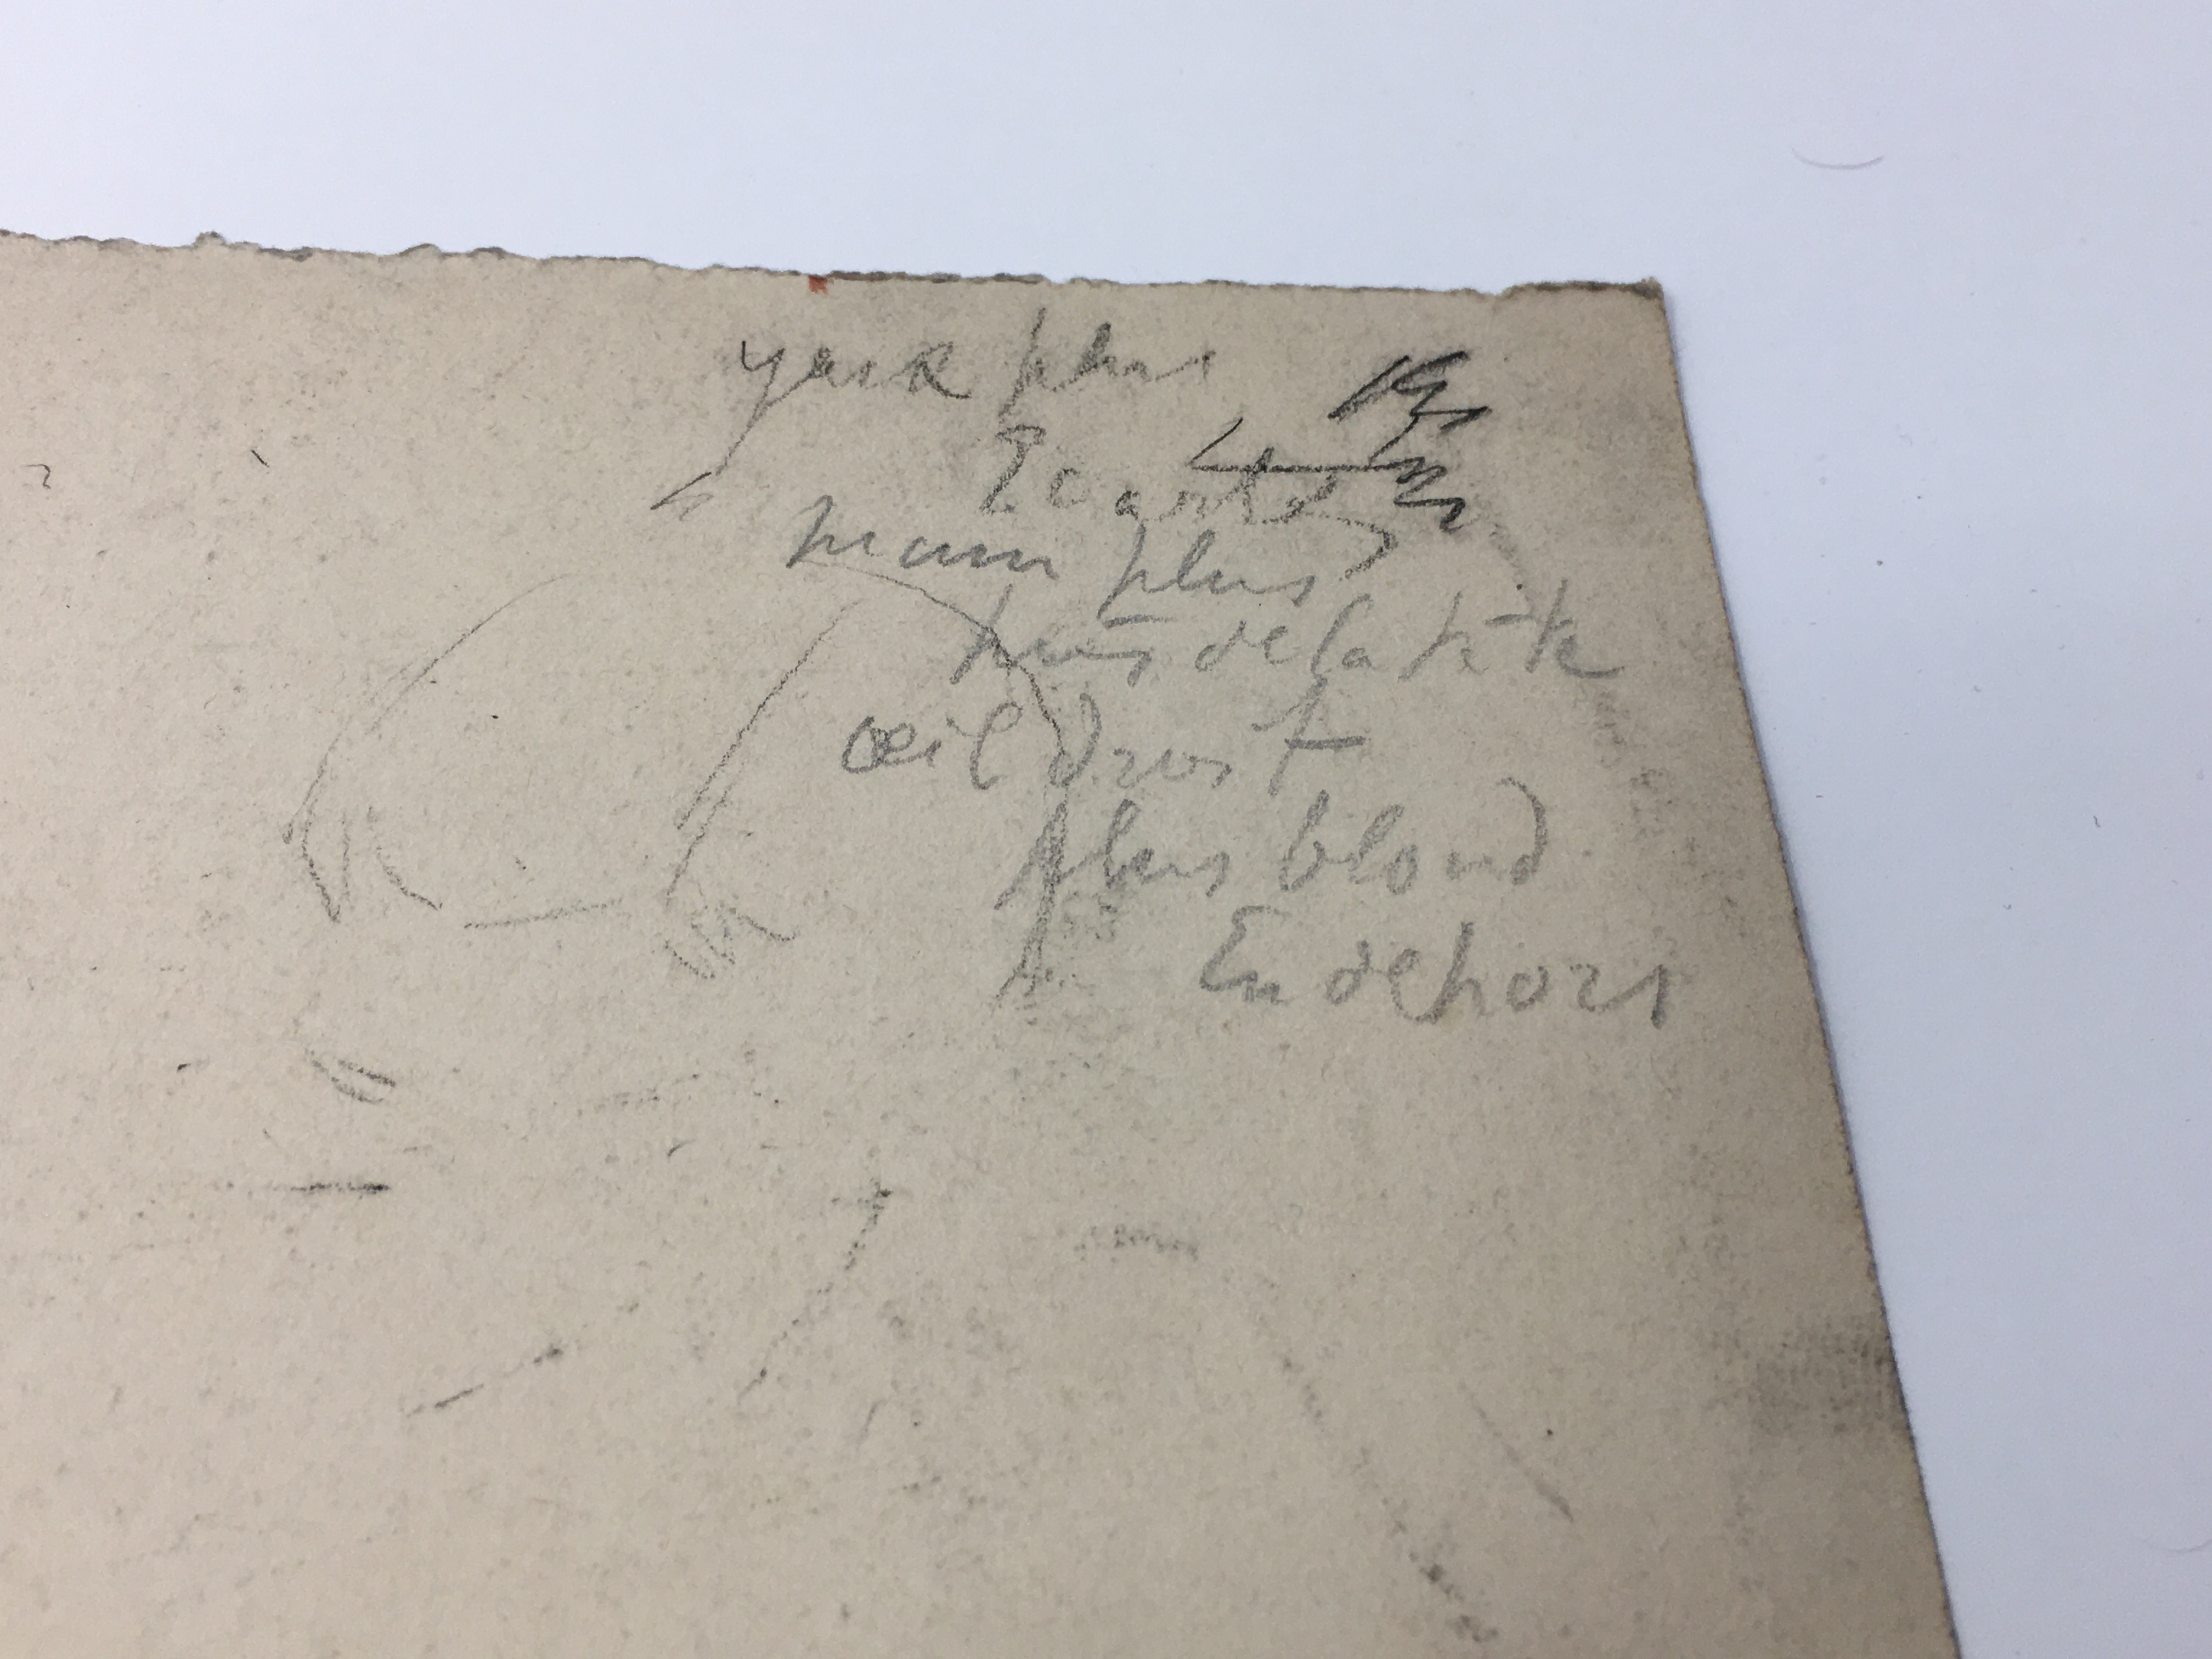 J'Accuse Newspaper, Emile Zola Quote, Signed Dreyfus Portrait, Rare Trial Drawings & Schwartzkoppen - Image 40 of 74